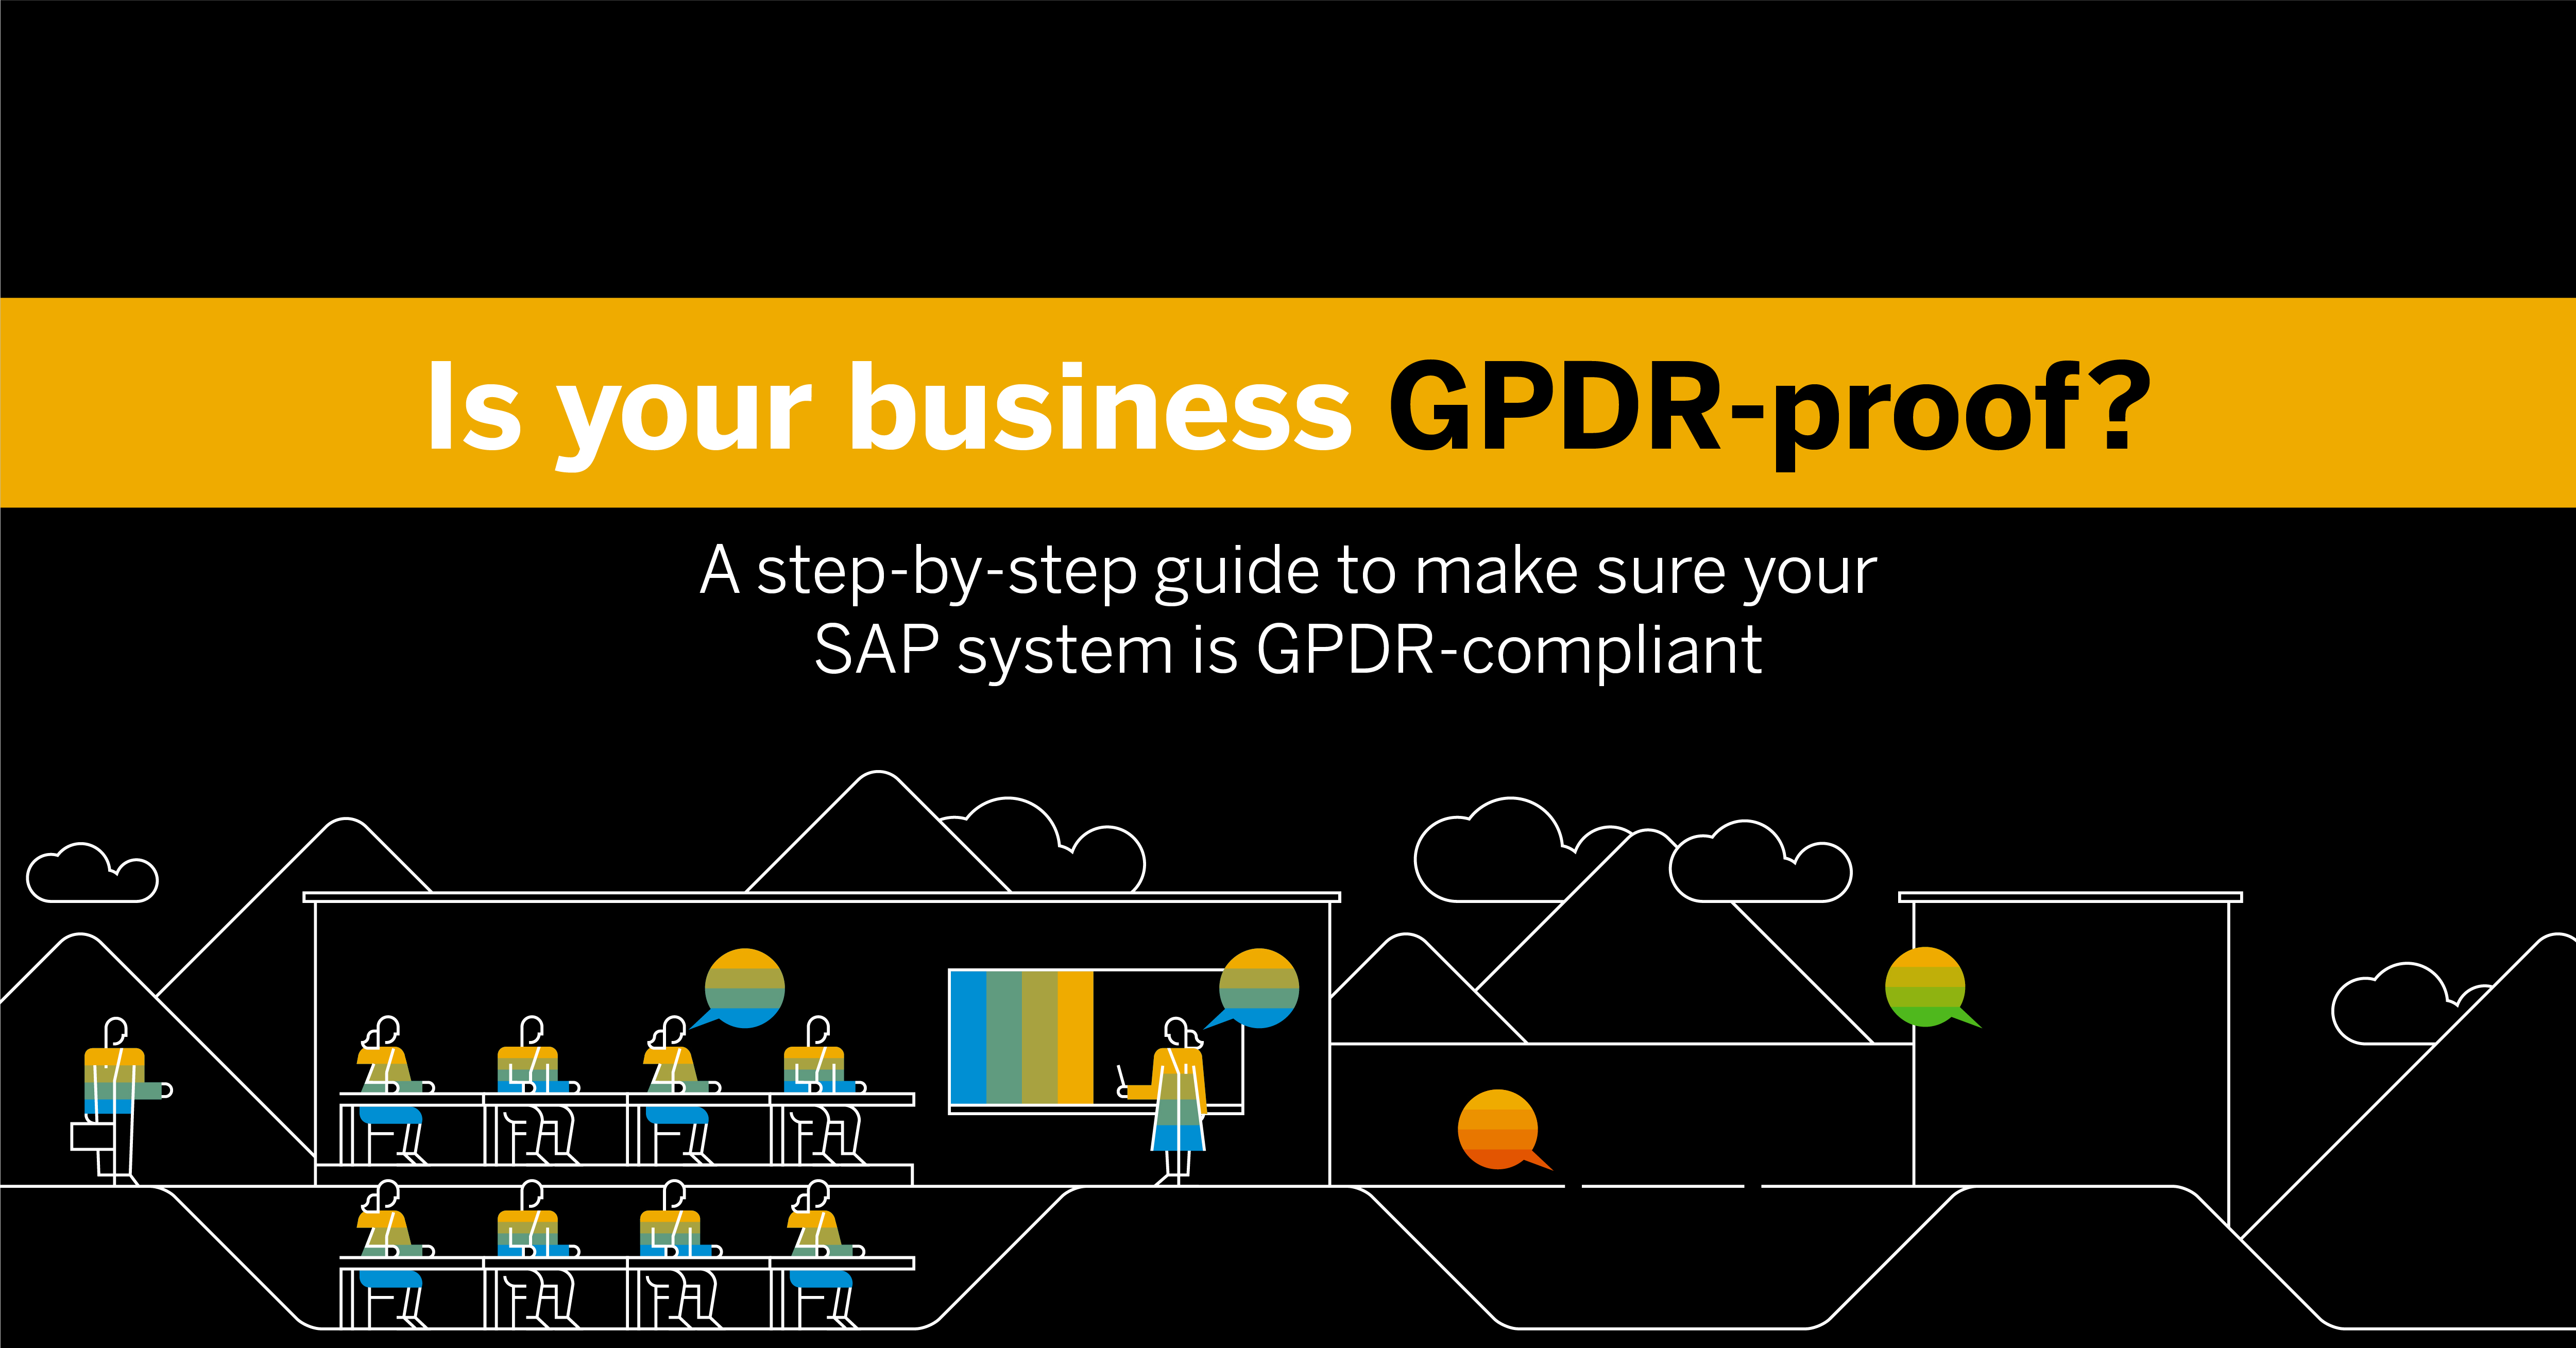 Is Your Business GPDR-Proof?